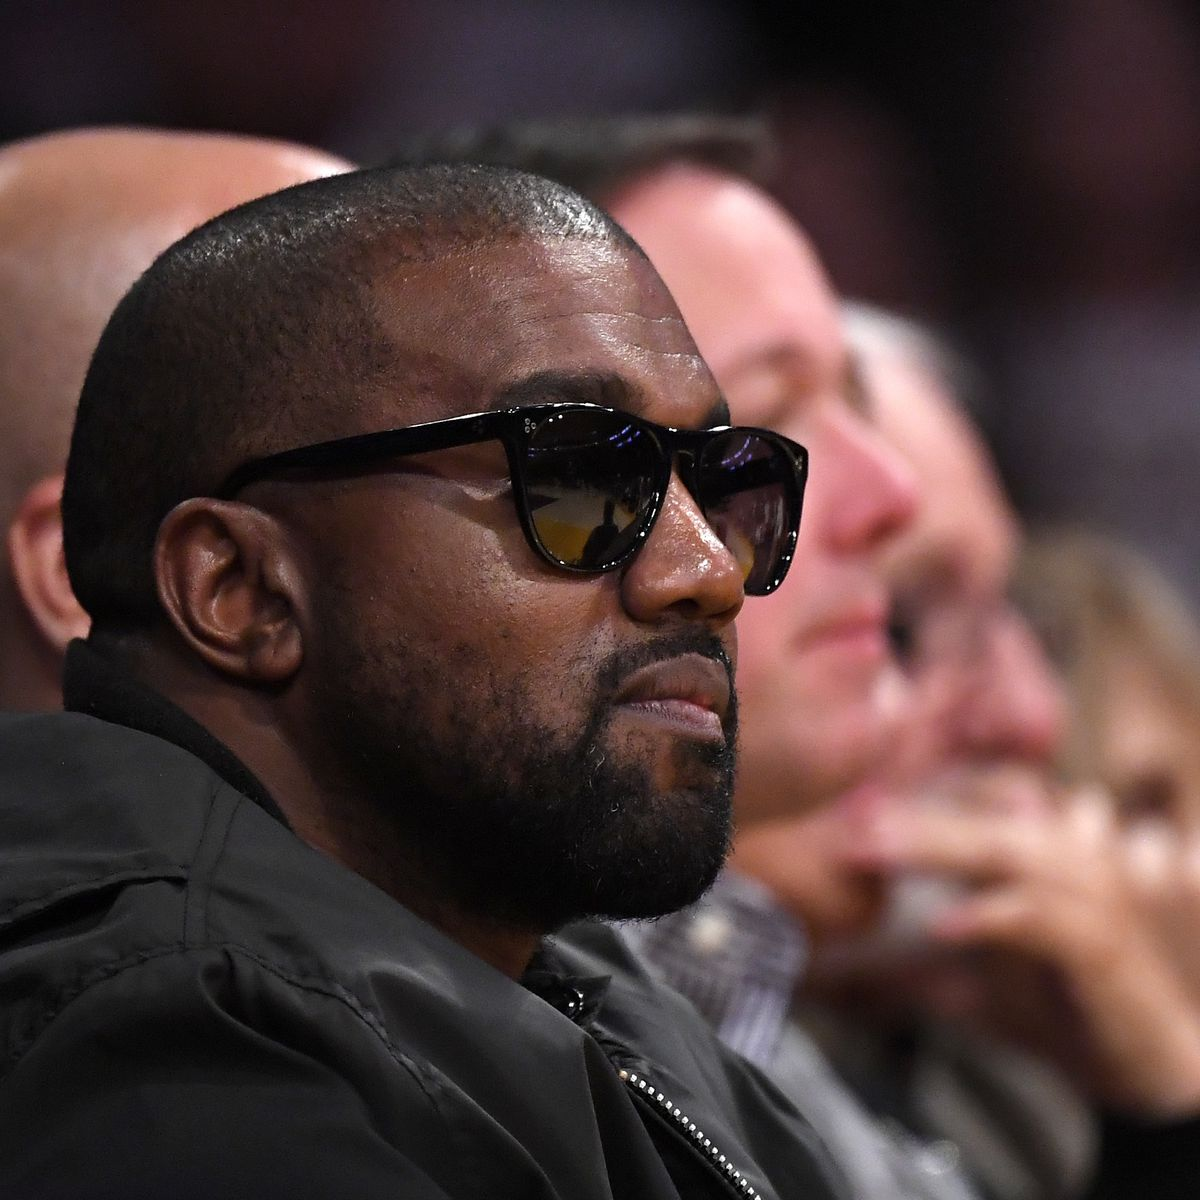 Kanye West received over 3,000 votes in Mississippi on Election Day